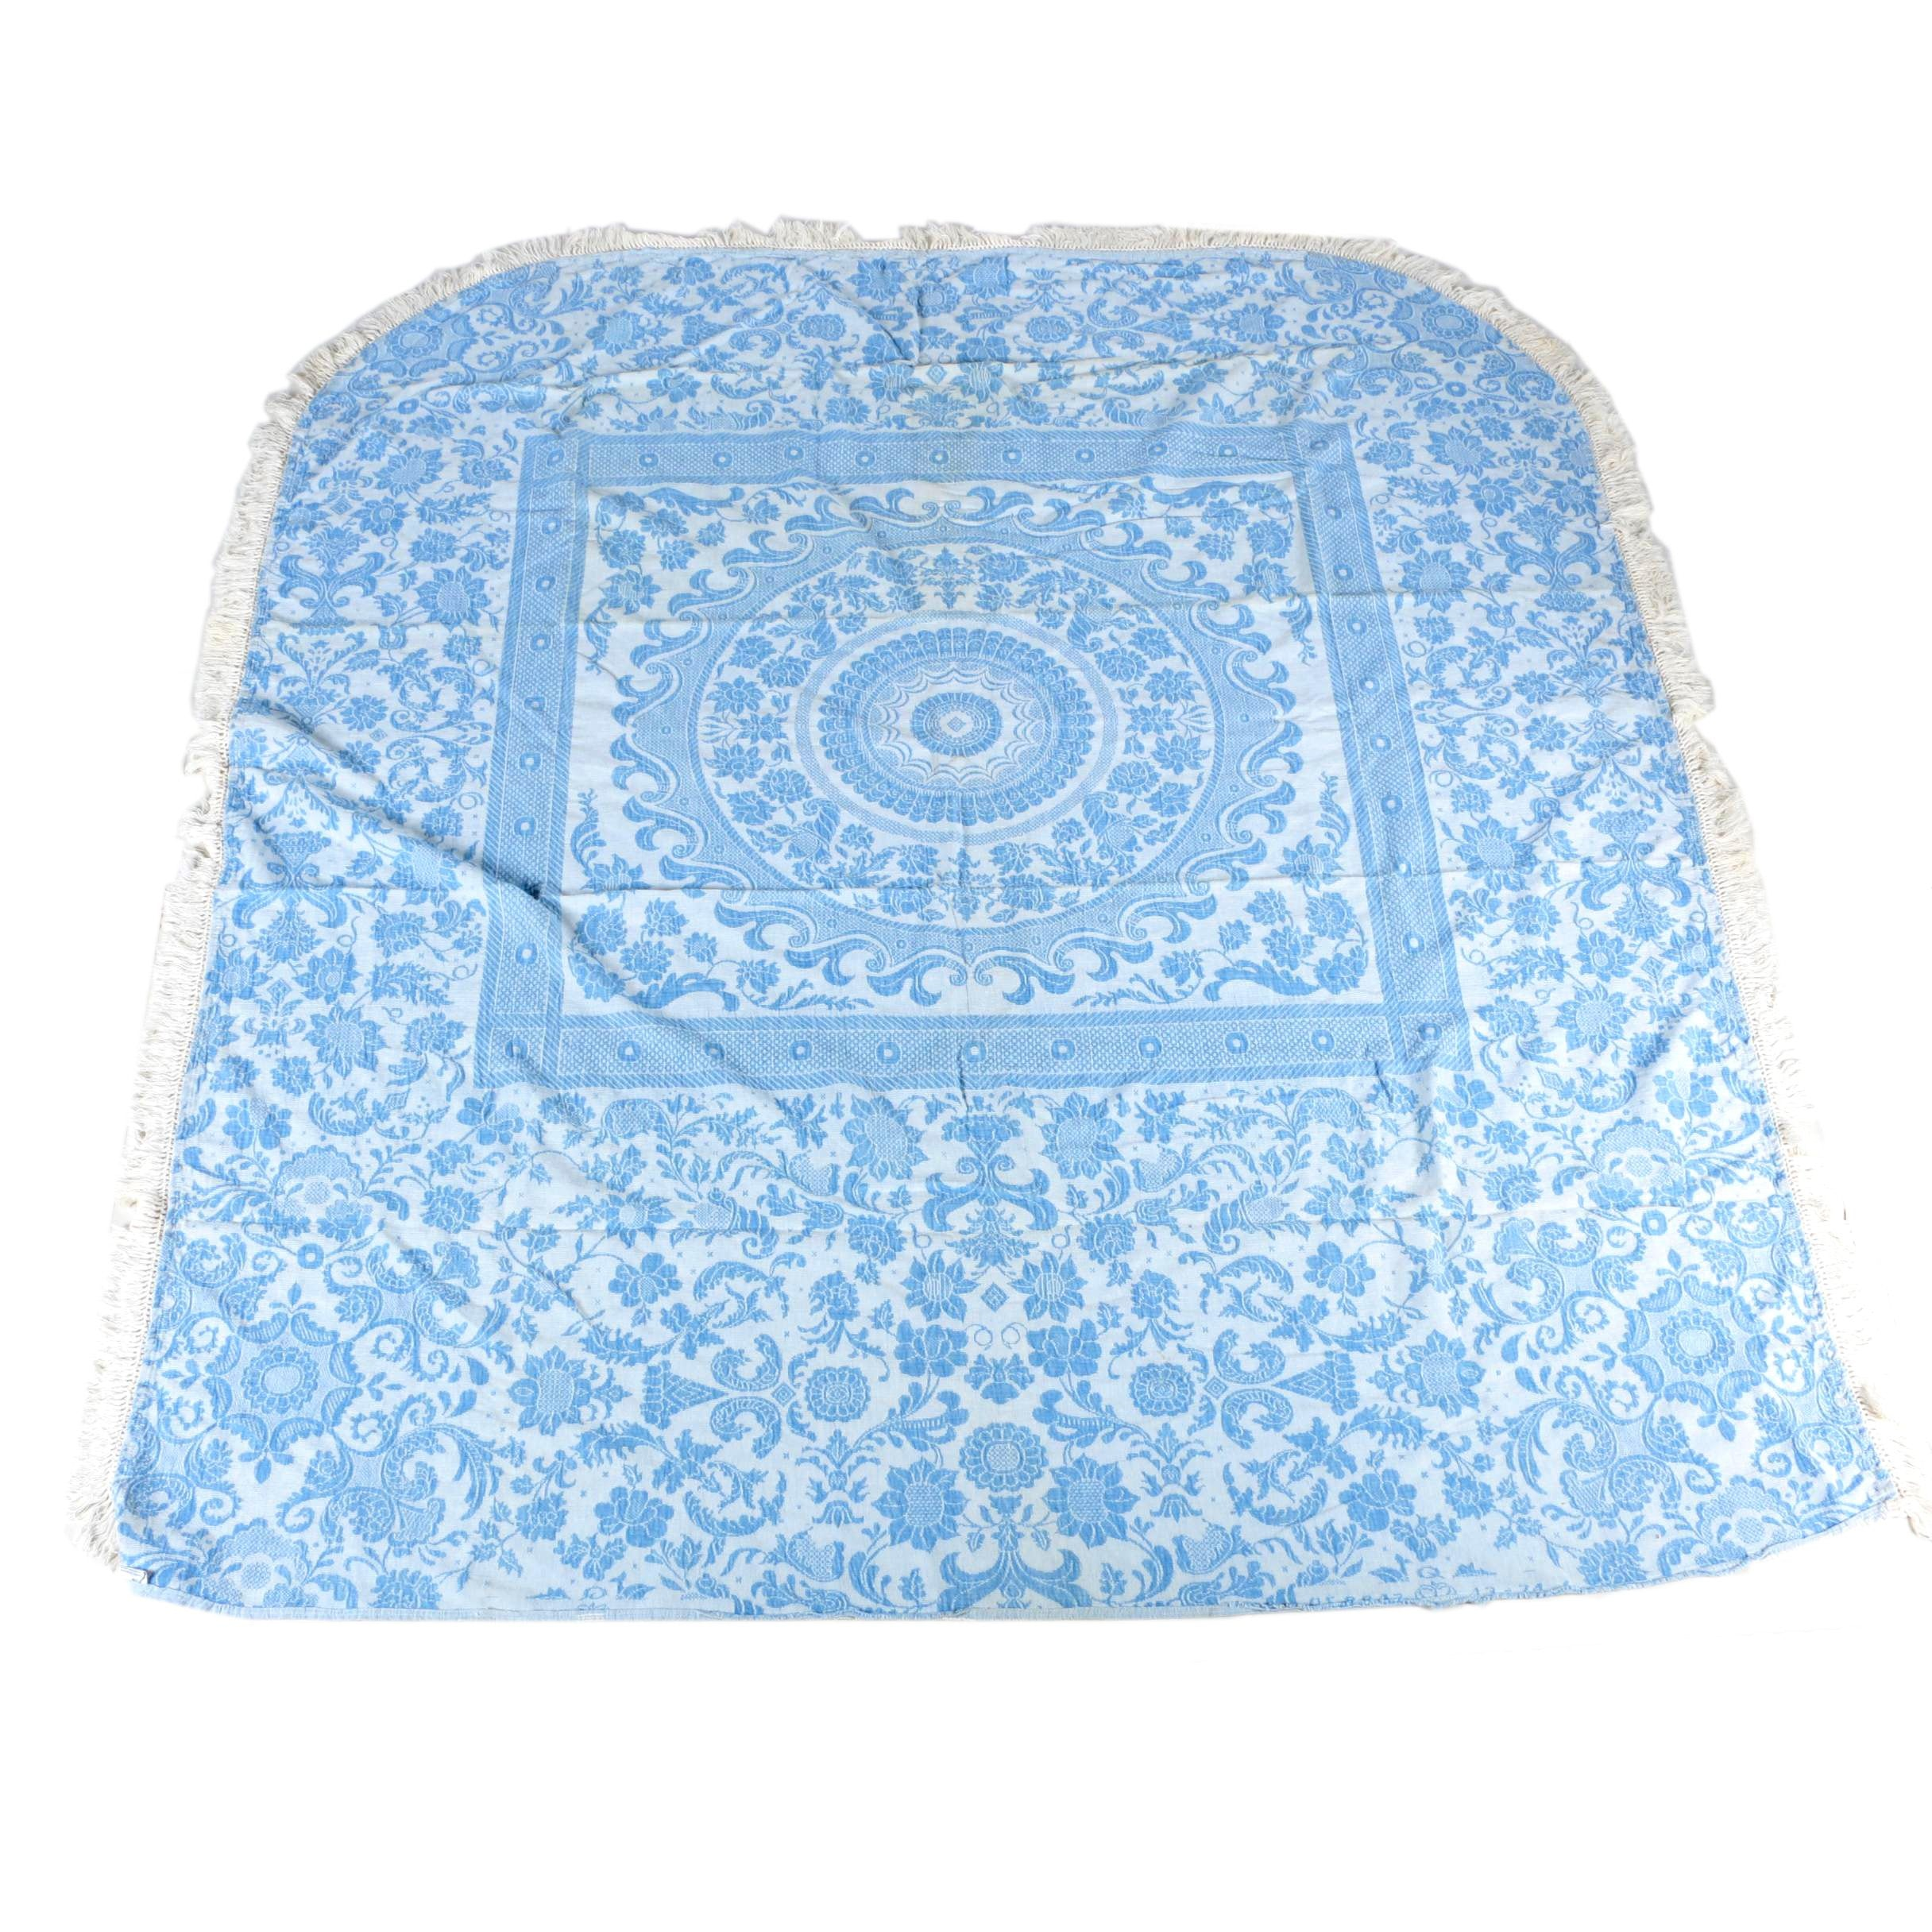 Queen-Size Blue and White Matelasse Bedspread